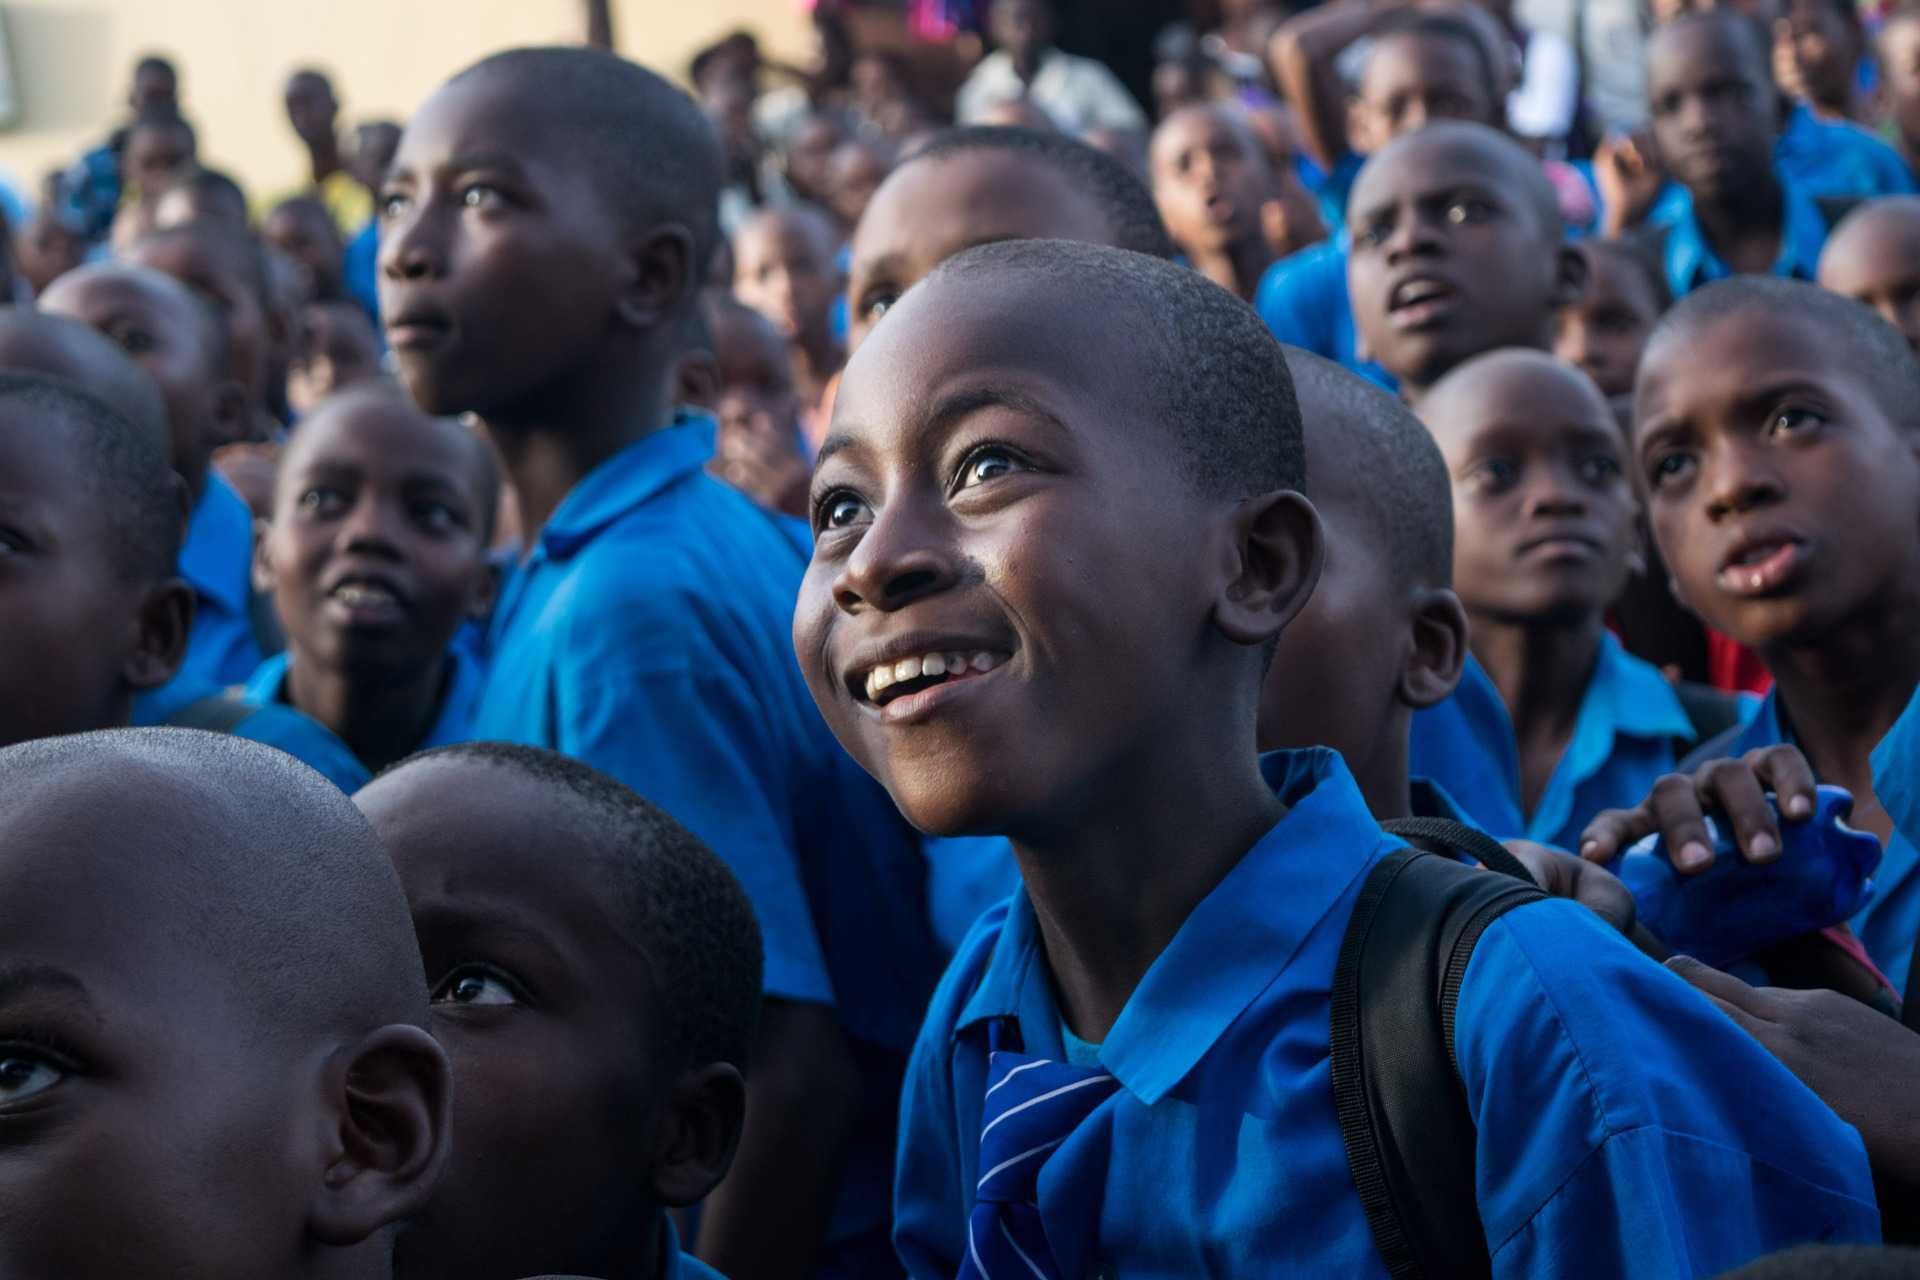 Plural societies' inequality and the promise of education